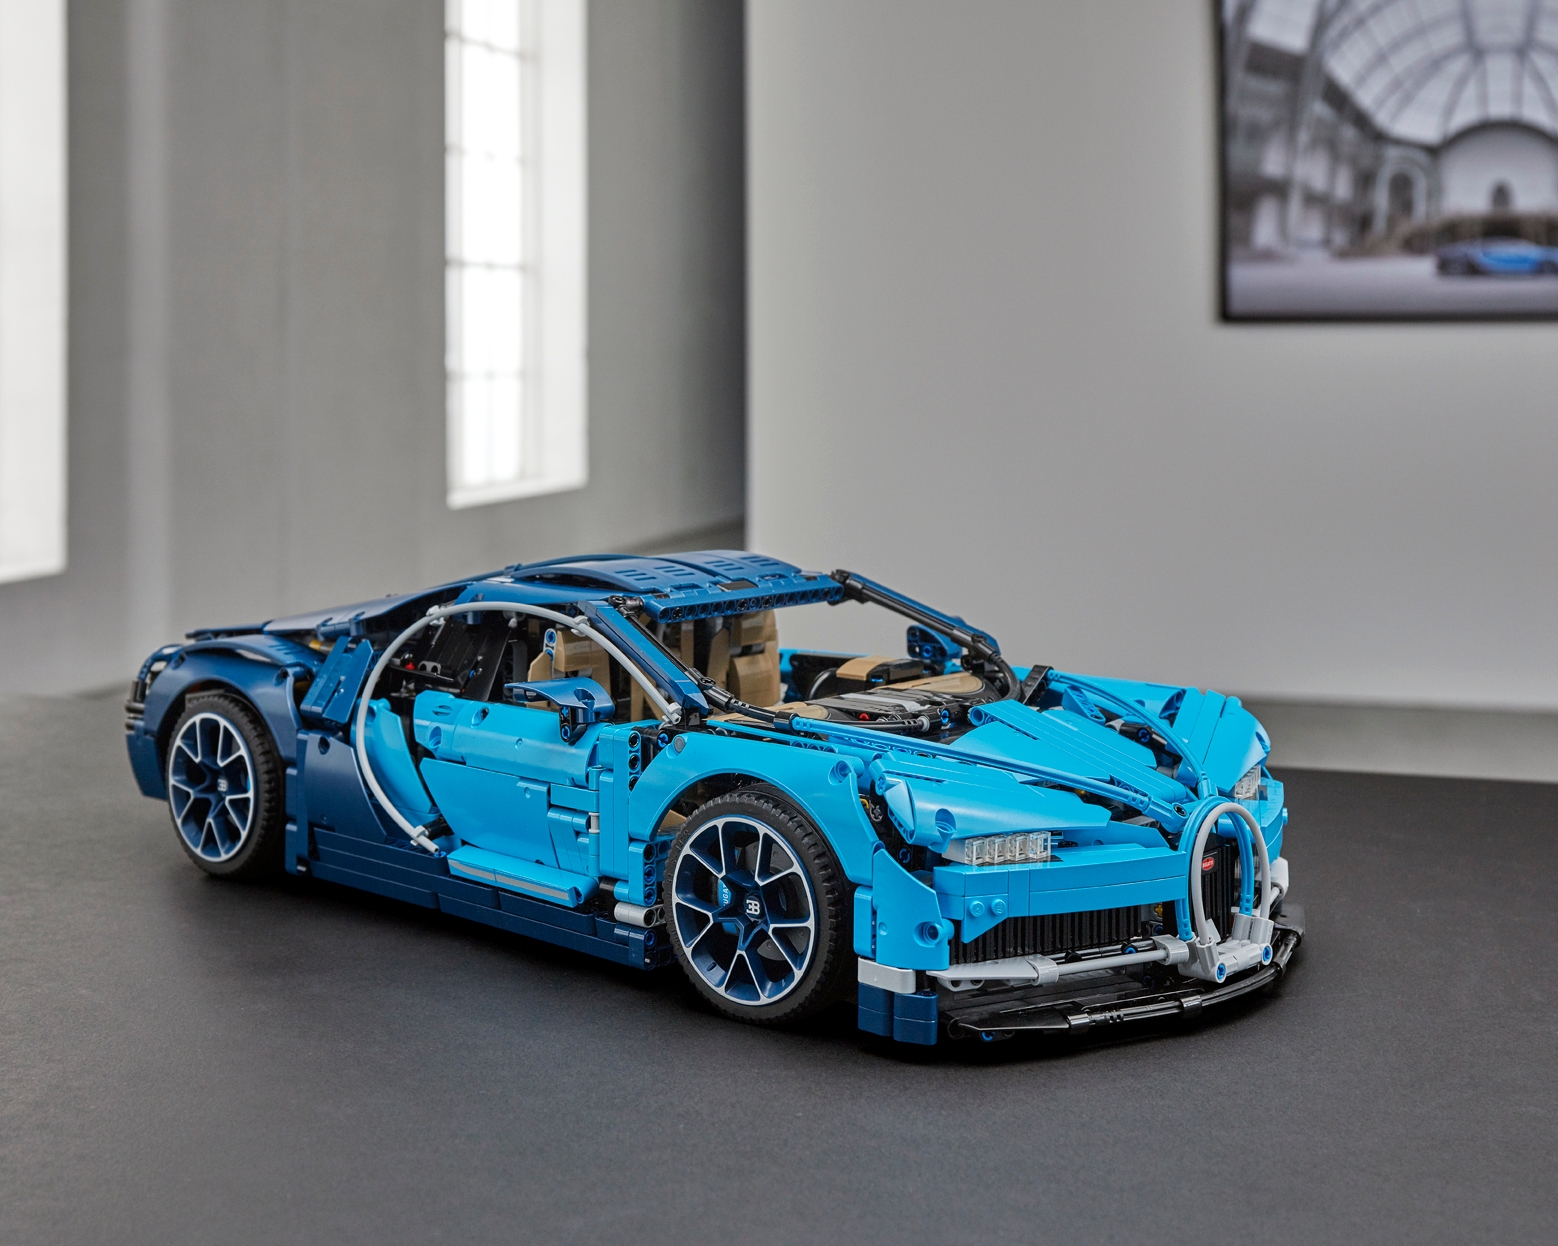 Revealed The New Lego Technic Bugatti Chiron Where Art Engineering And Bricks Combine About Us Lego Com Lt